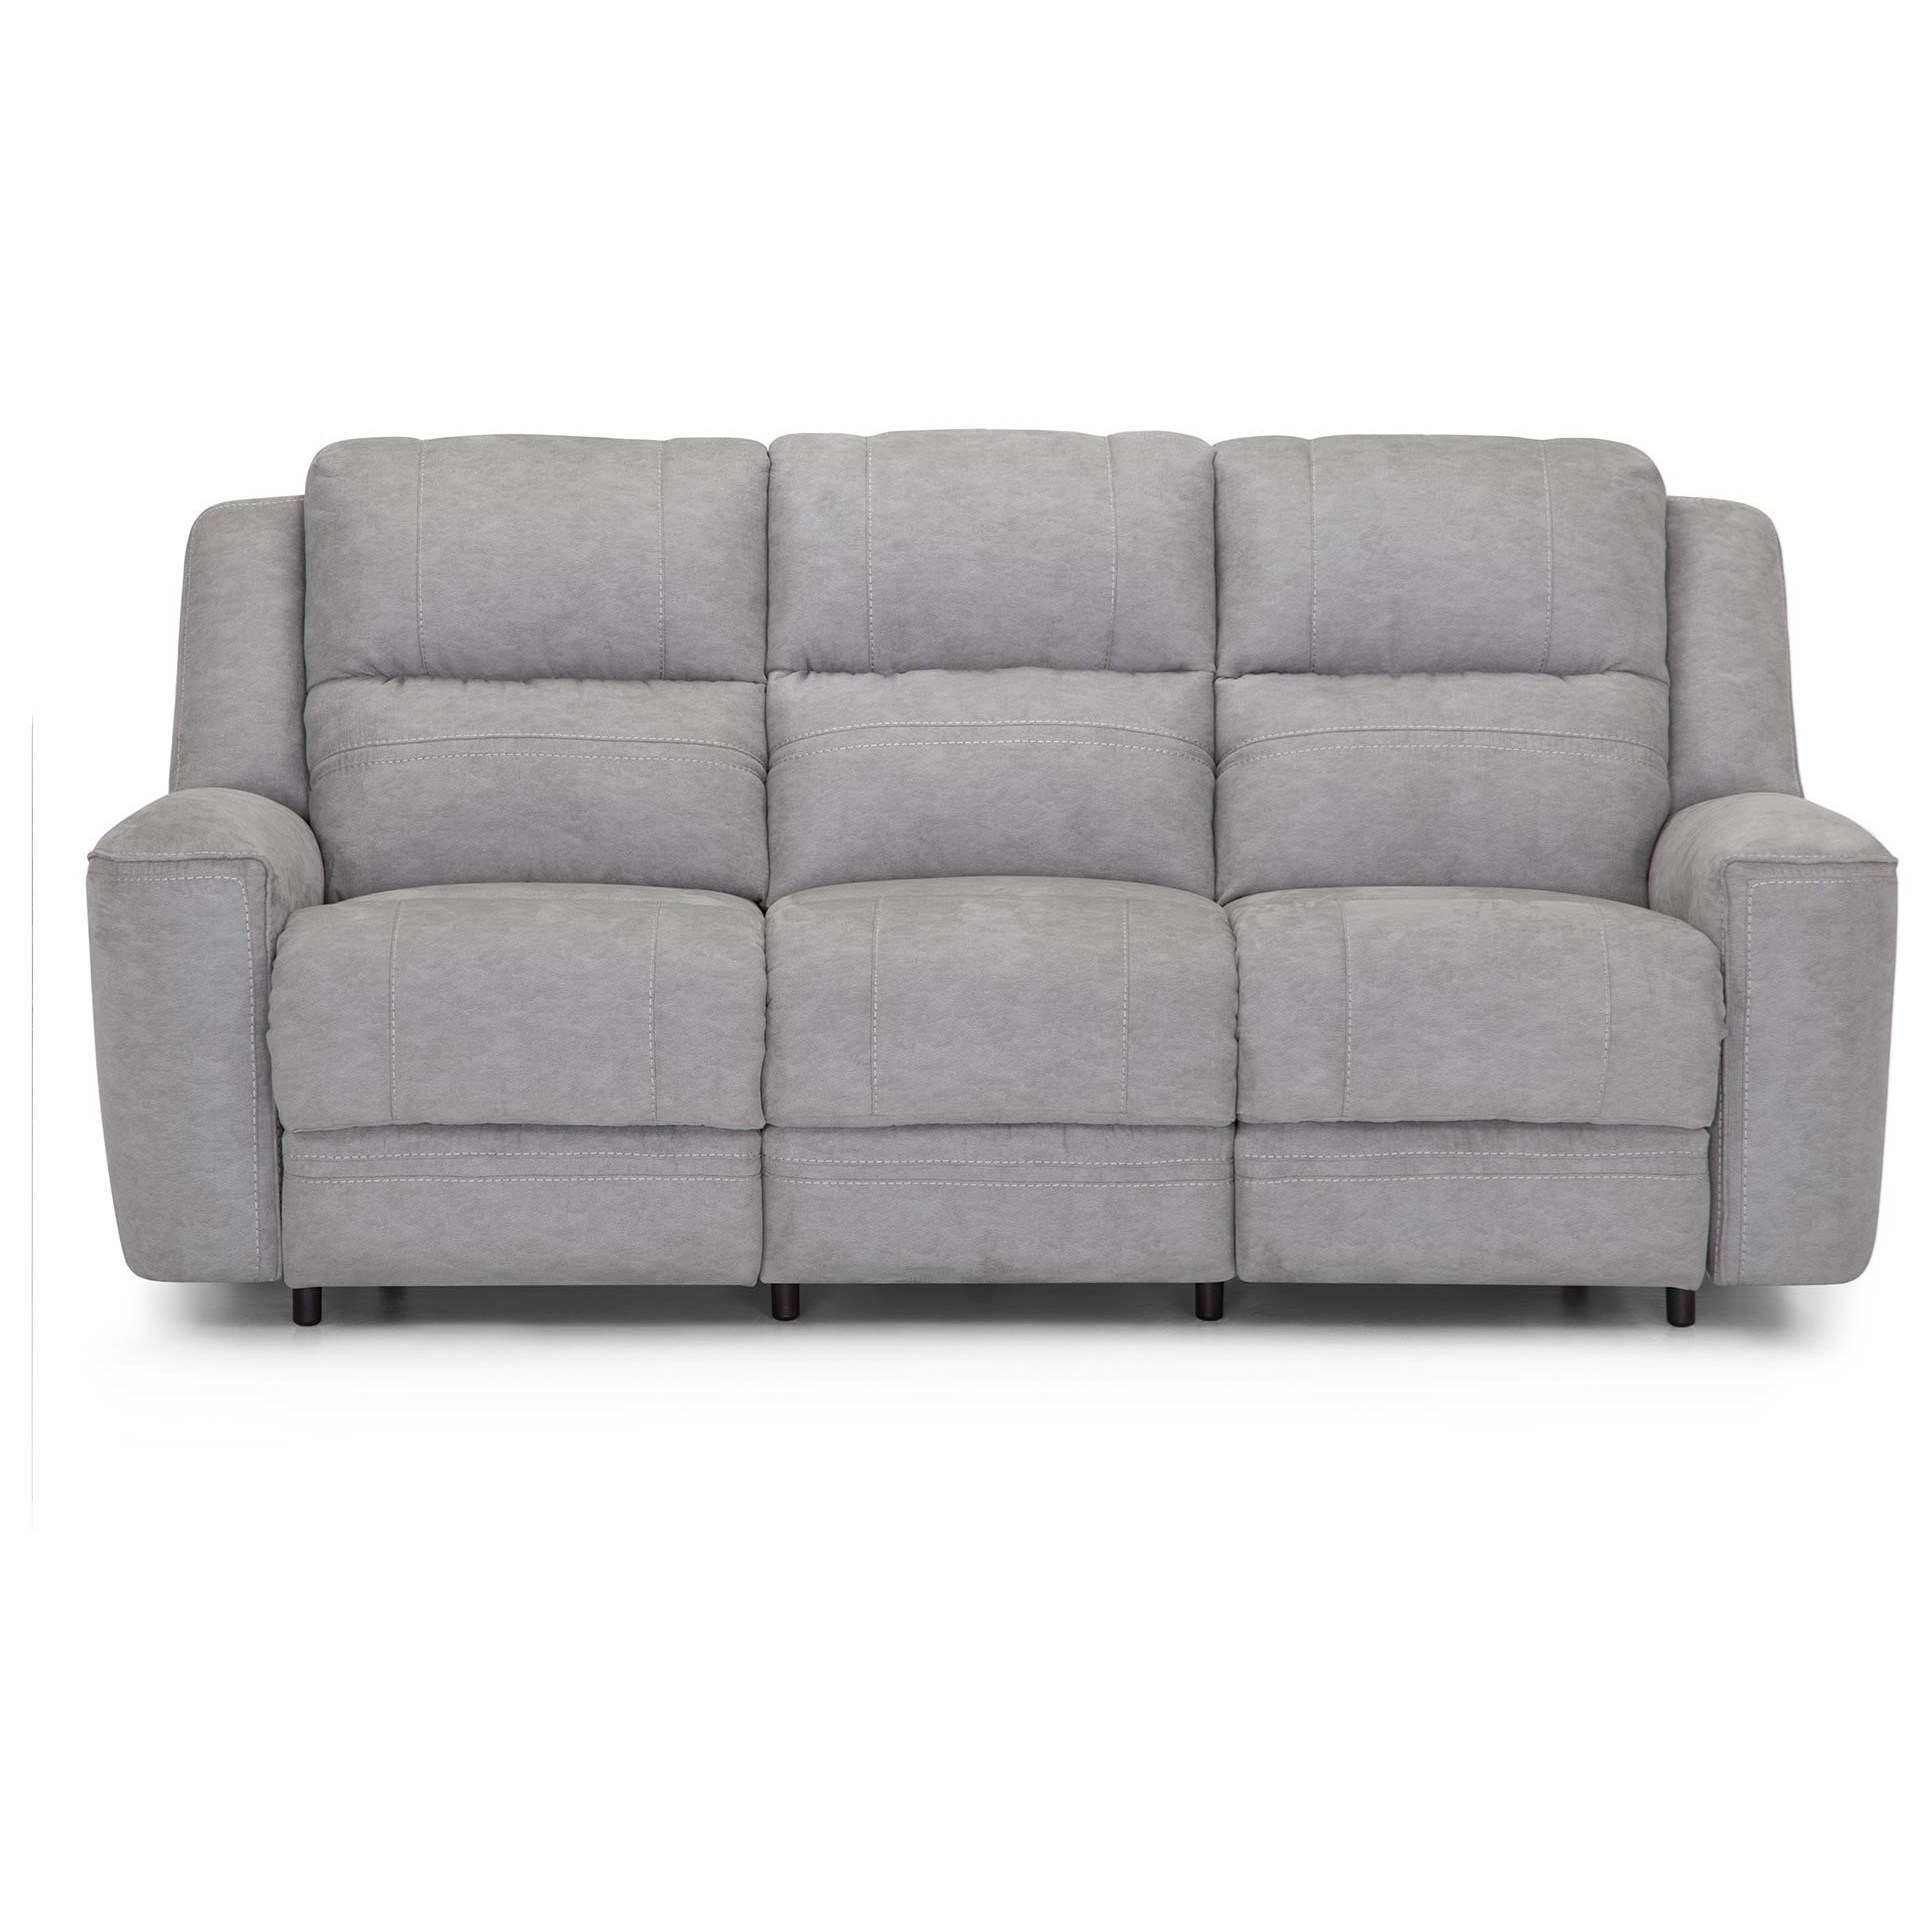 762 Dual Power Reclining Sofa with USB Port by Franklin at Wilcox Furniture